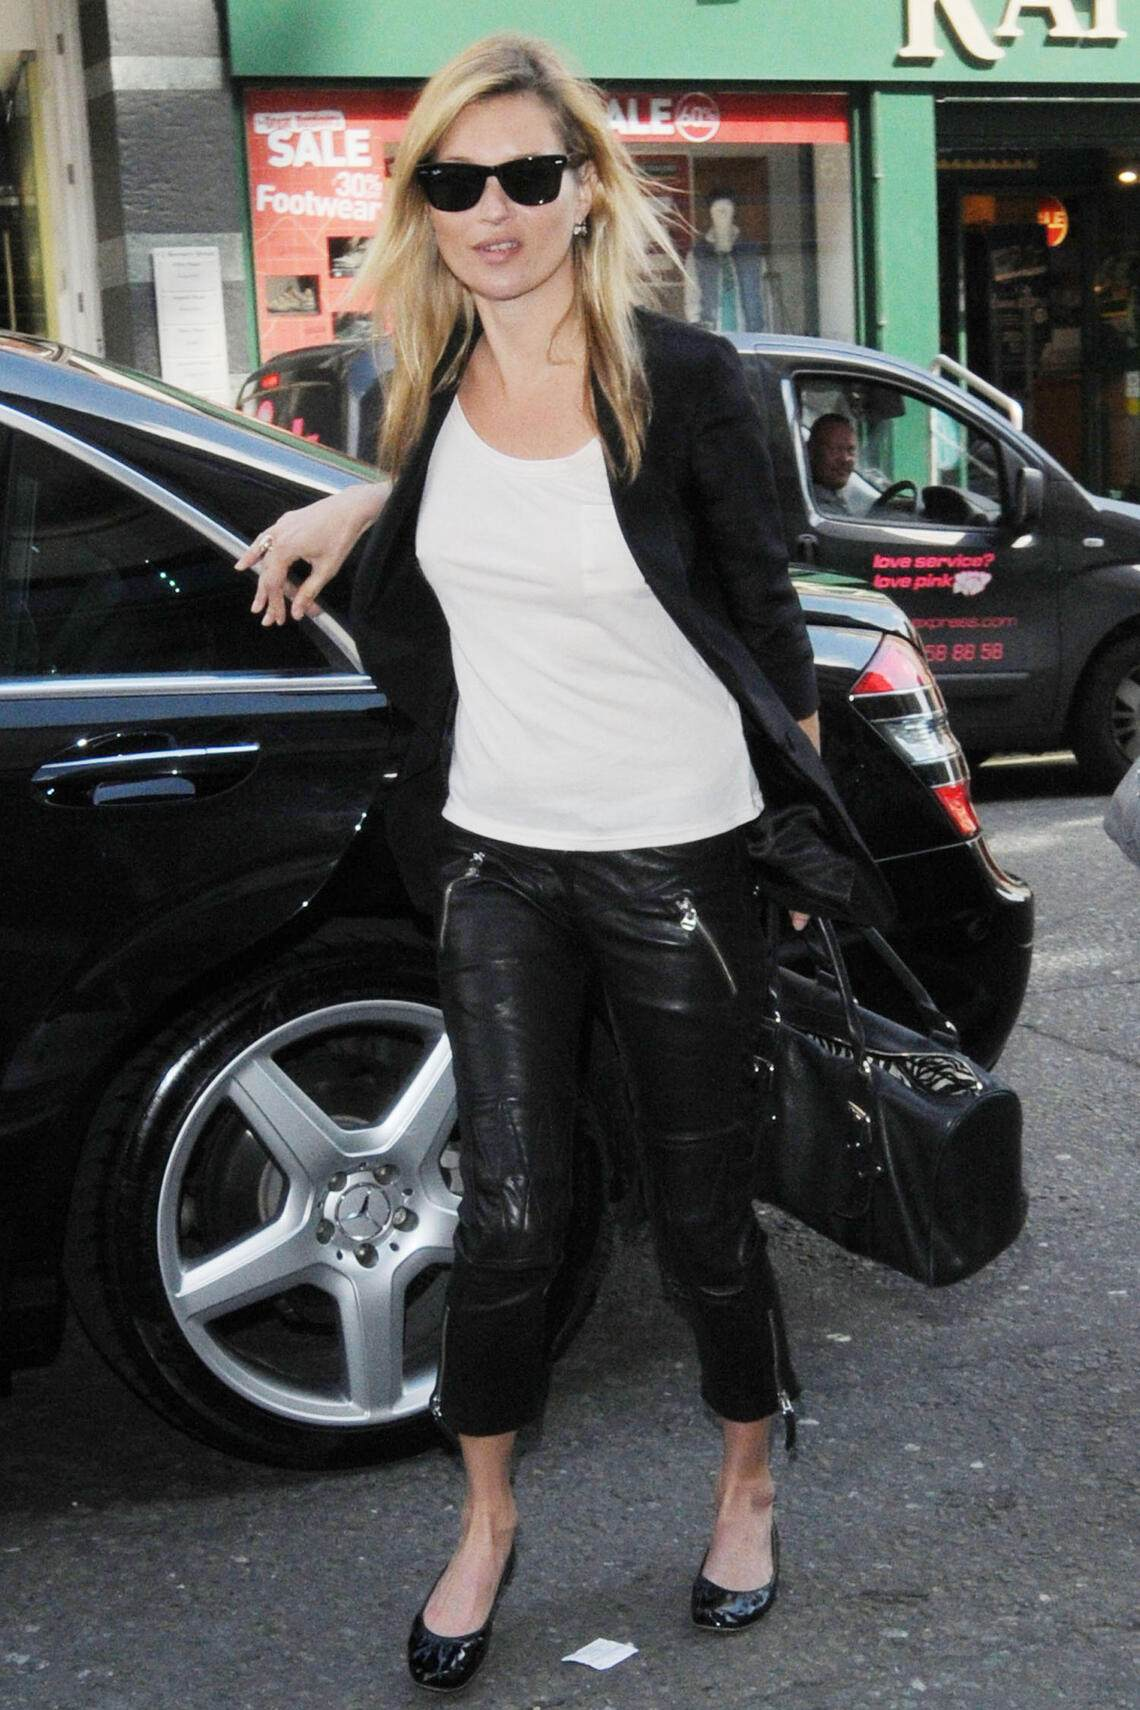 ©2010 RAMEY PHOTO /XPOSURE 20.APRIL.2010 - LONDON - UK KATE MOSS ARRIVES AT SOME LONDON OFFICES DRESSED IN A SLIGHTLY SHORTER VERSION OF HER FAVOURITE LEATHER TROUSERS. JJMR/XP (Photo by Philip Ramey/Corbis via Getty Images)